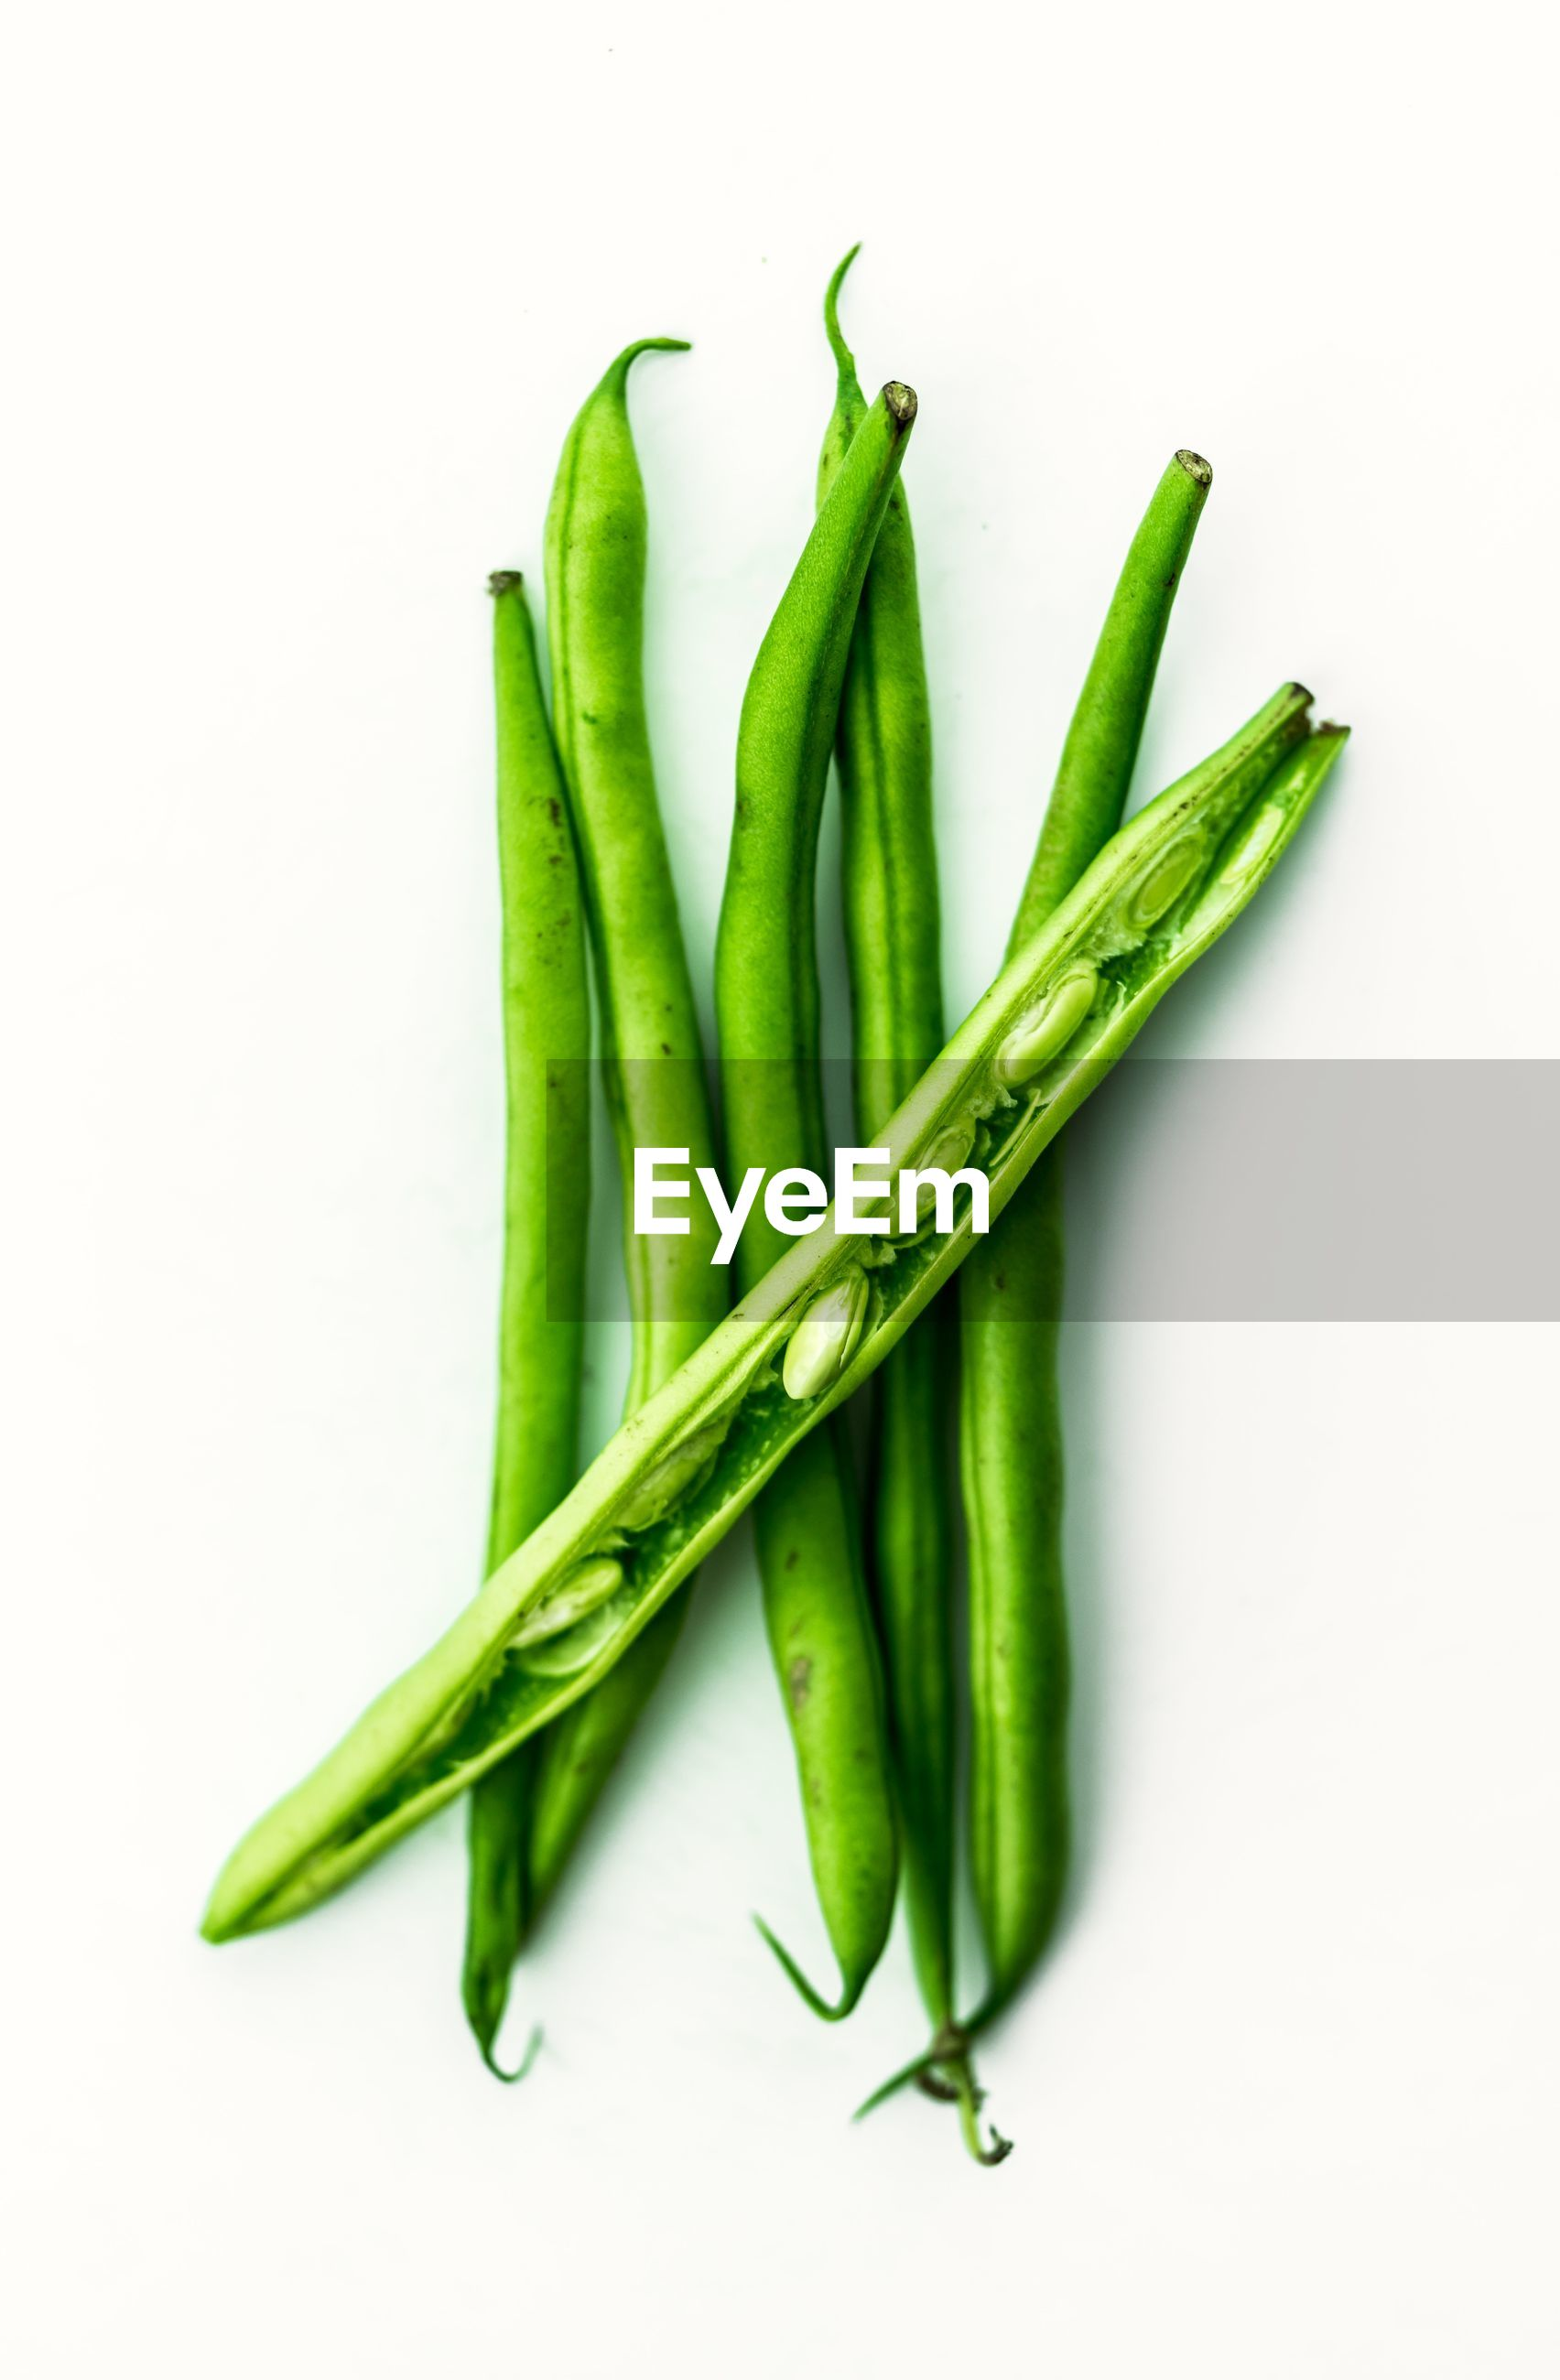 Close-up of green beans against white background